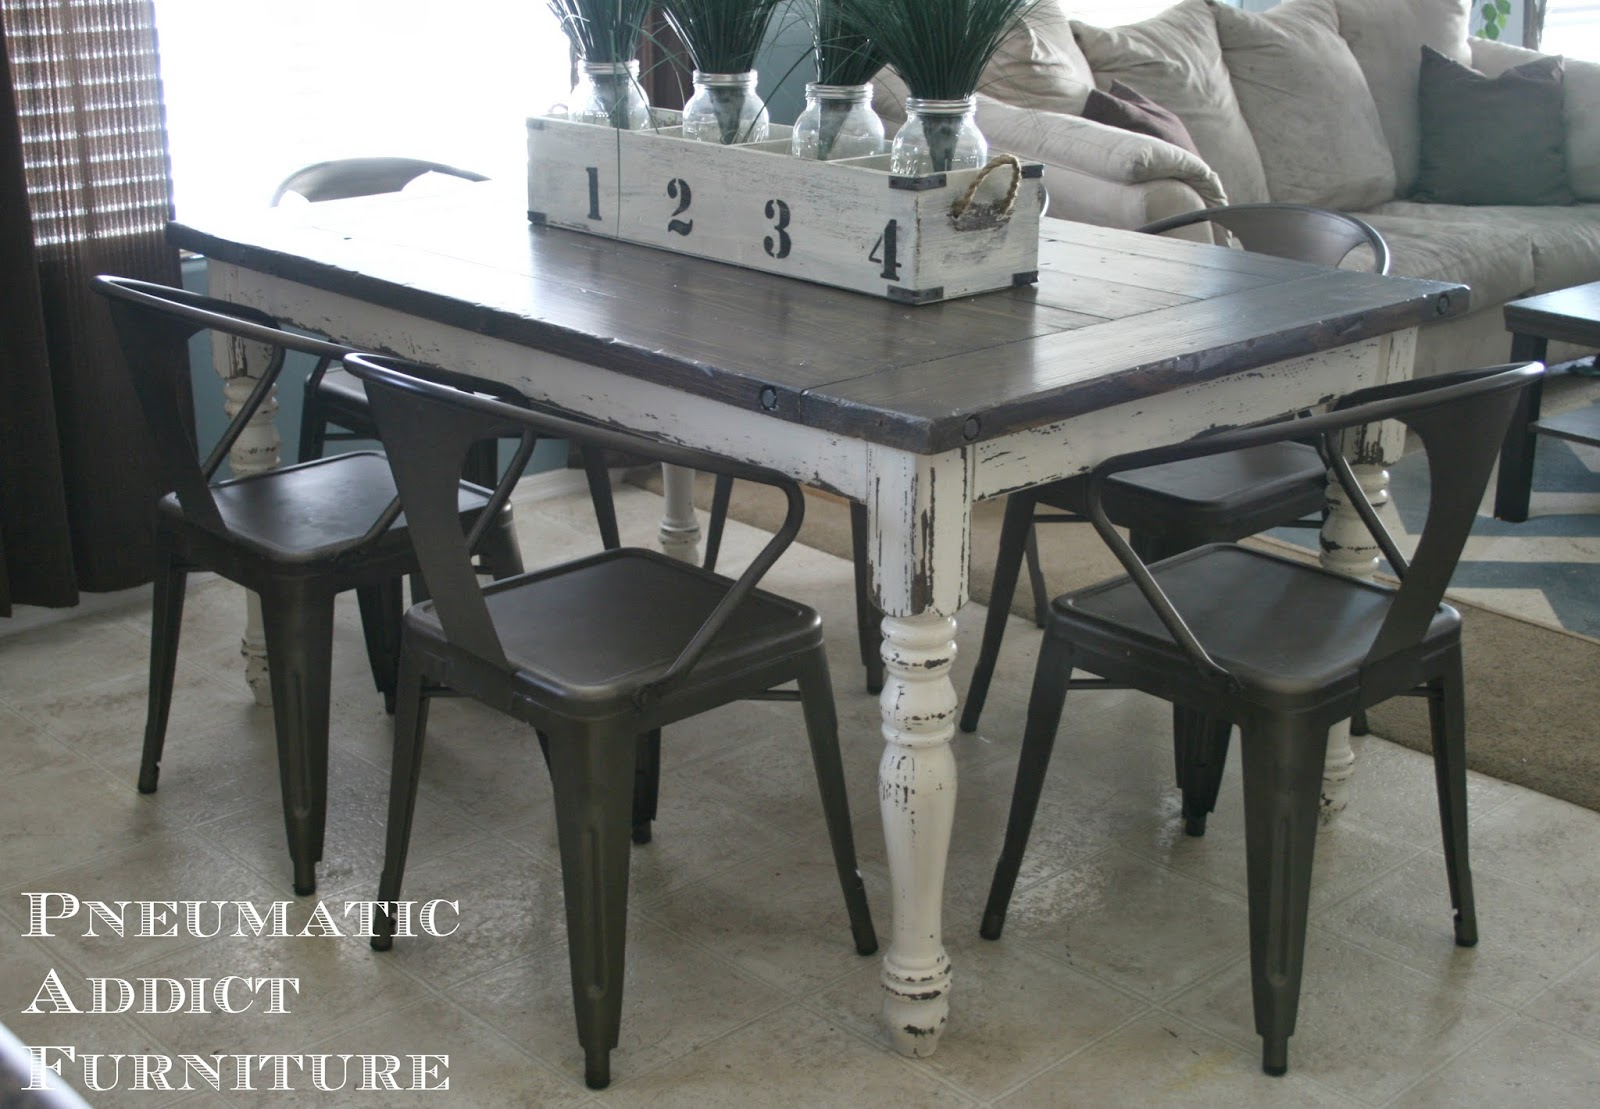 Pneumatic Addict Industrial Farmhouse Table